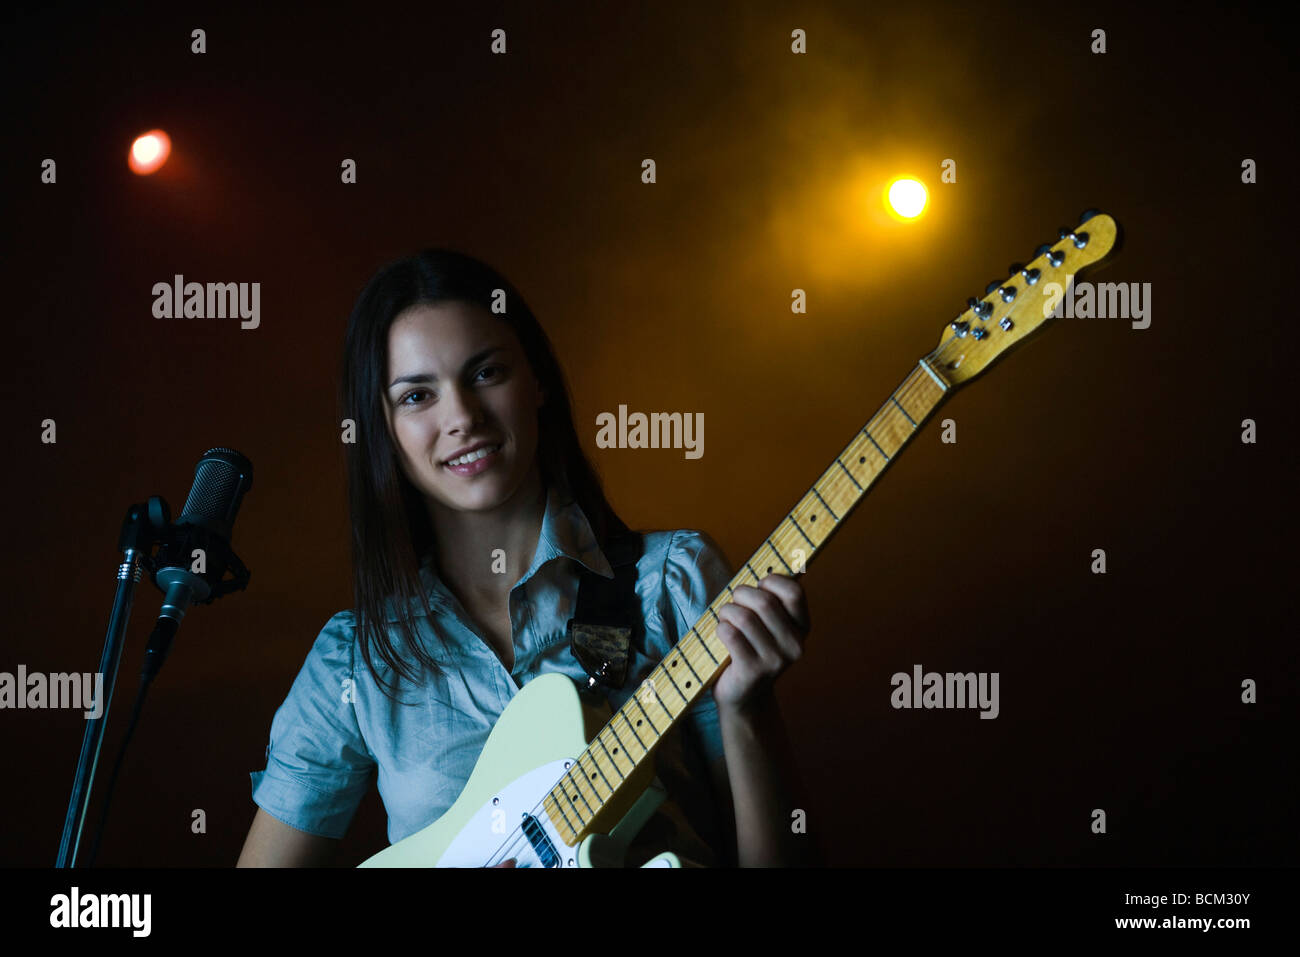 Jeune femme jouant de la guitare électrique, smiling at camera Photo Stock